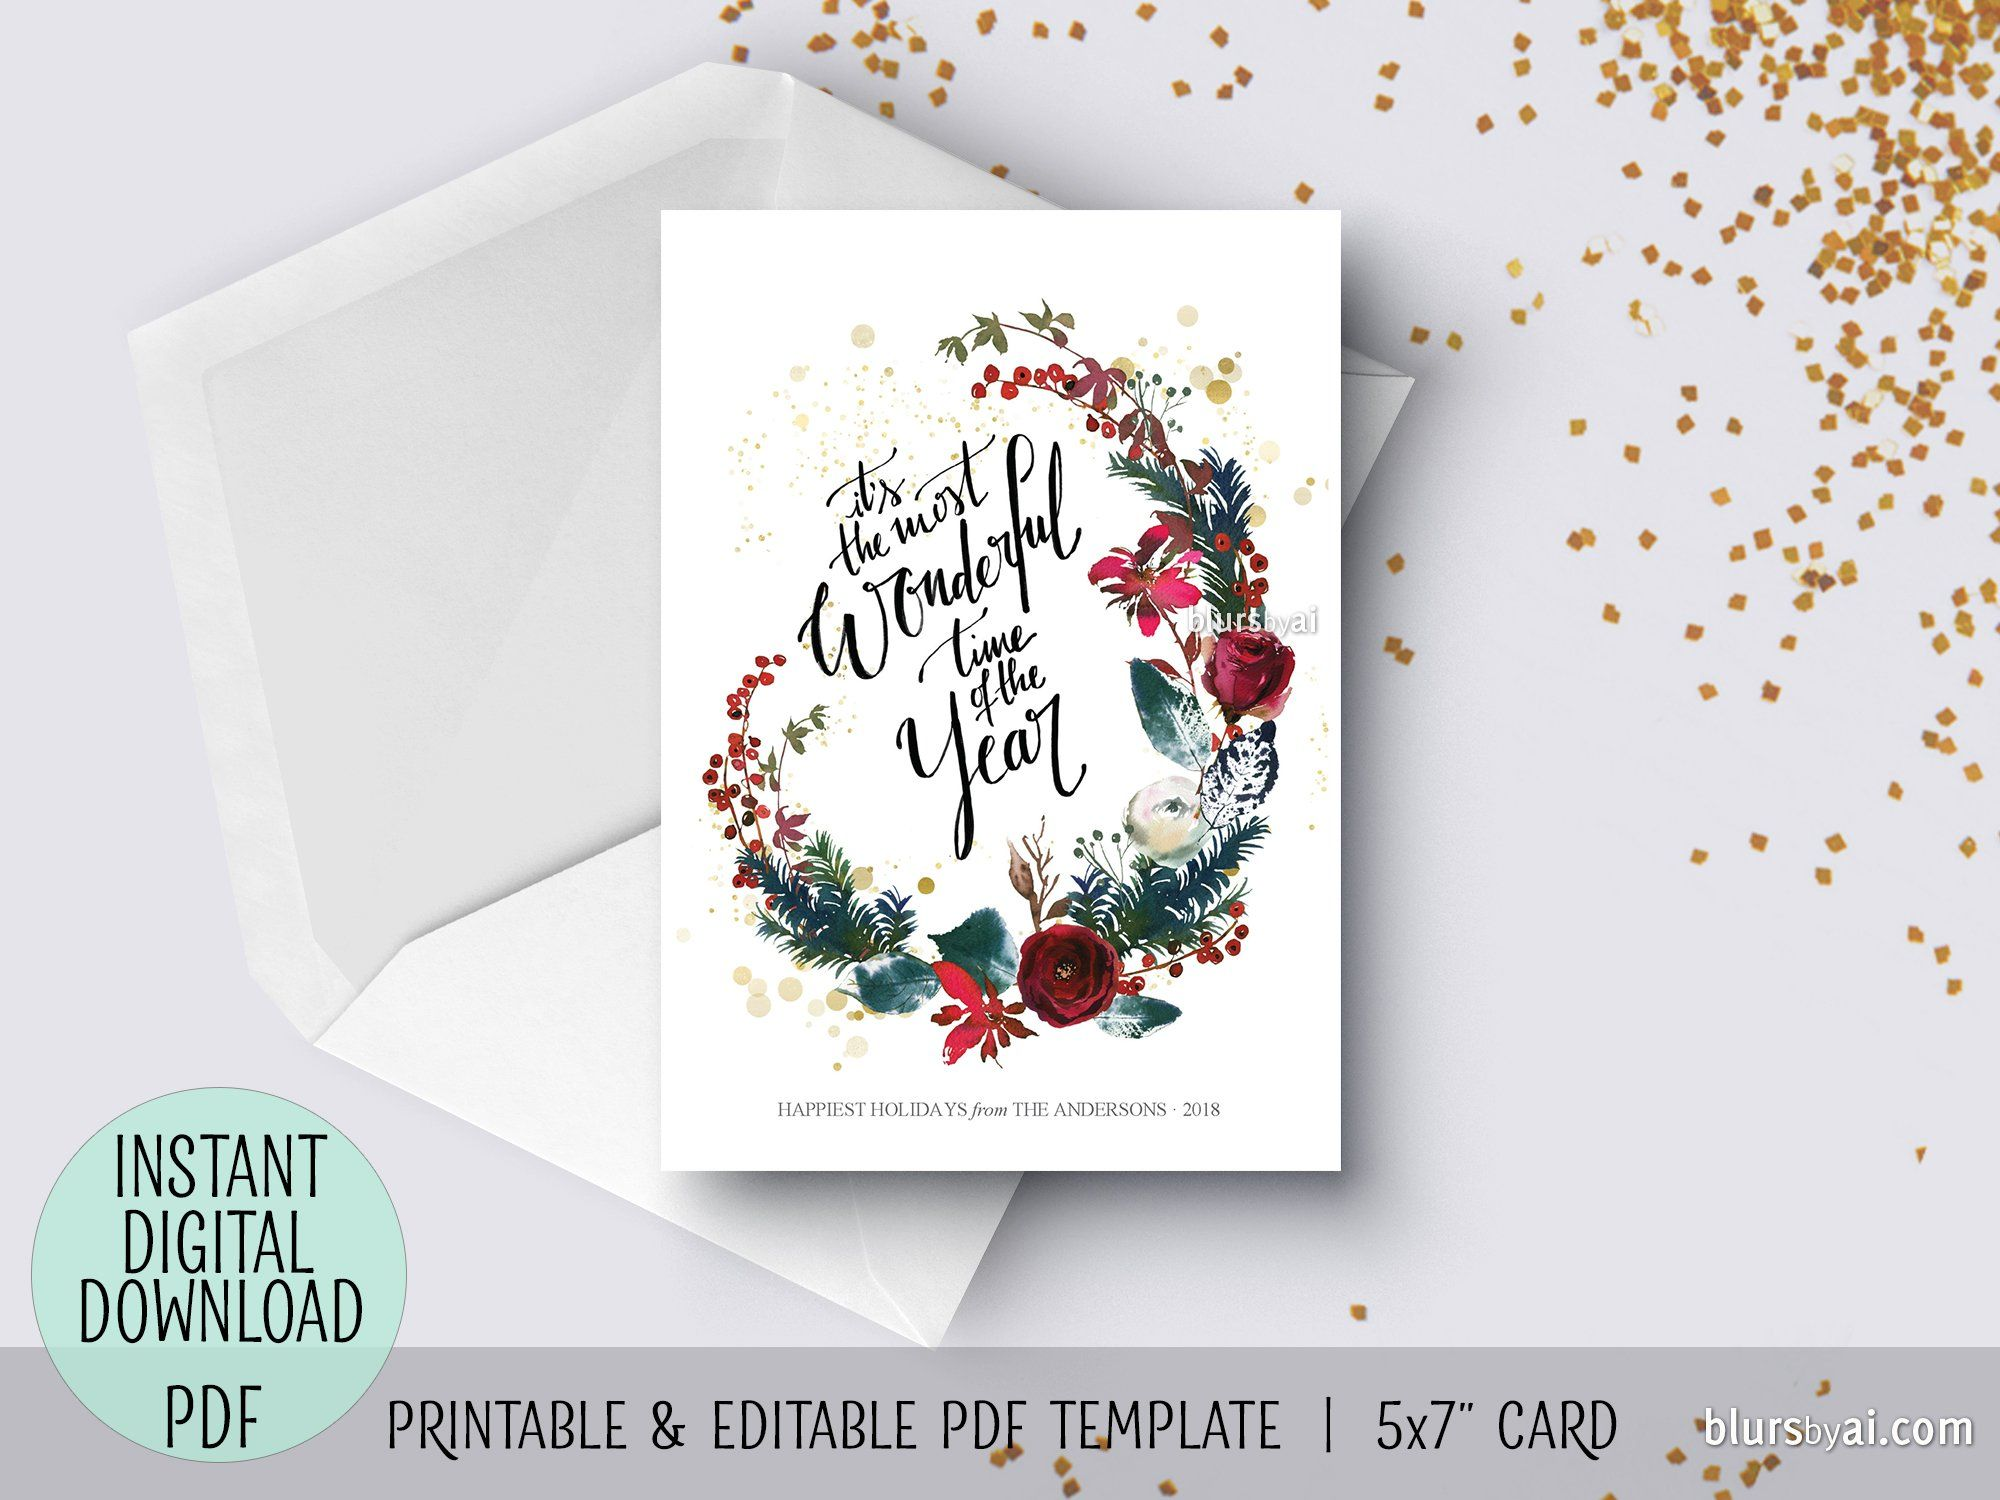 Editable Pdf Christmas Card Template It S The Most Wonderful Time Of The Year Christmas Card Template Simple Christmas Cards Christmas Cards